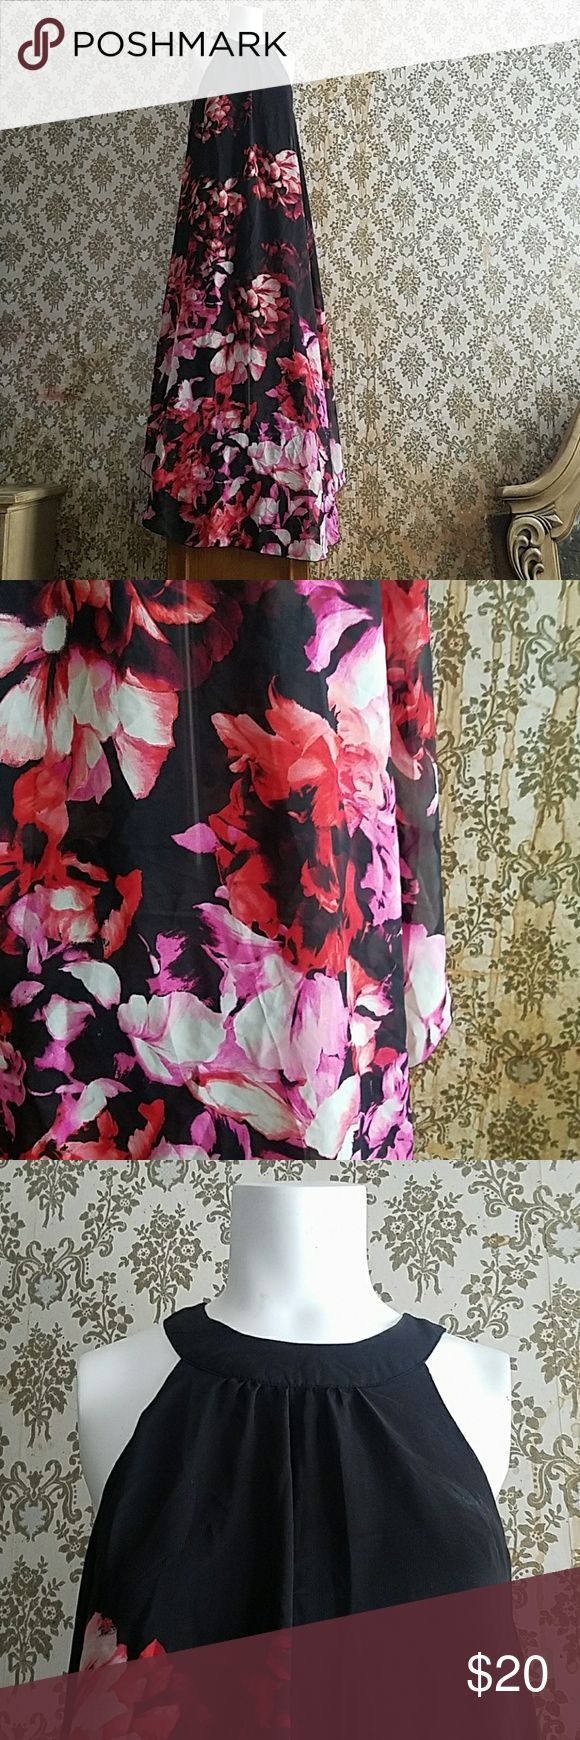 Charlotte Russe Shear Black Pink Floral Dress This is an absolutely gorgeous dress! While the inside Fashions a snug-fitting black under dress the outside Fashions a sheer black pink and red cover. And is absolutely stunning never having been warned before but the tags are not still attached. It is a size medium and while it has been living in my dresser it has never seen the light of day. Thank you for looking and don't forget to check out all the other great items I presently have for sale…